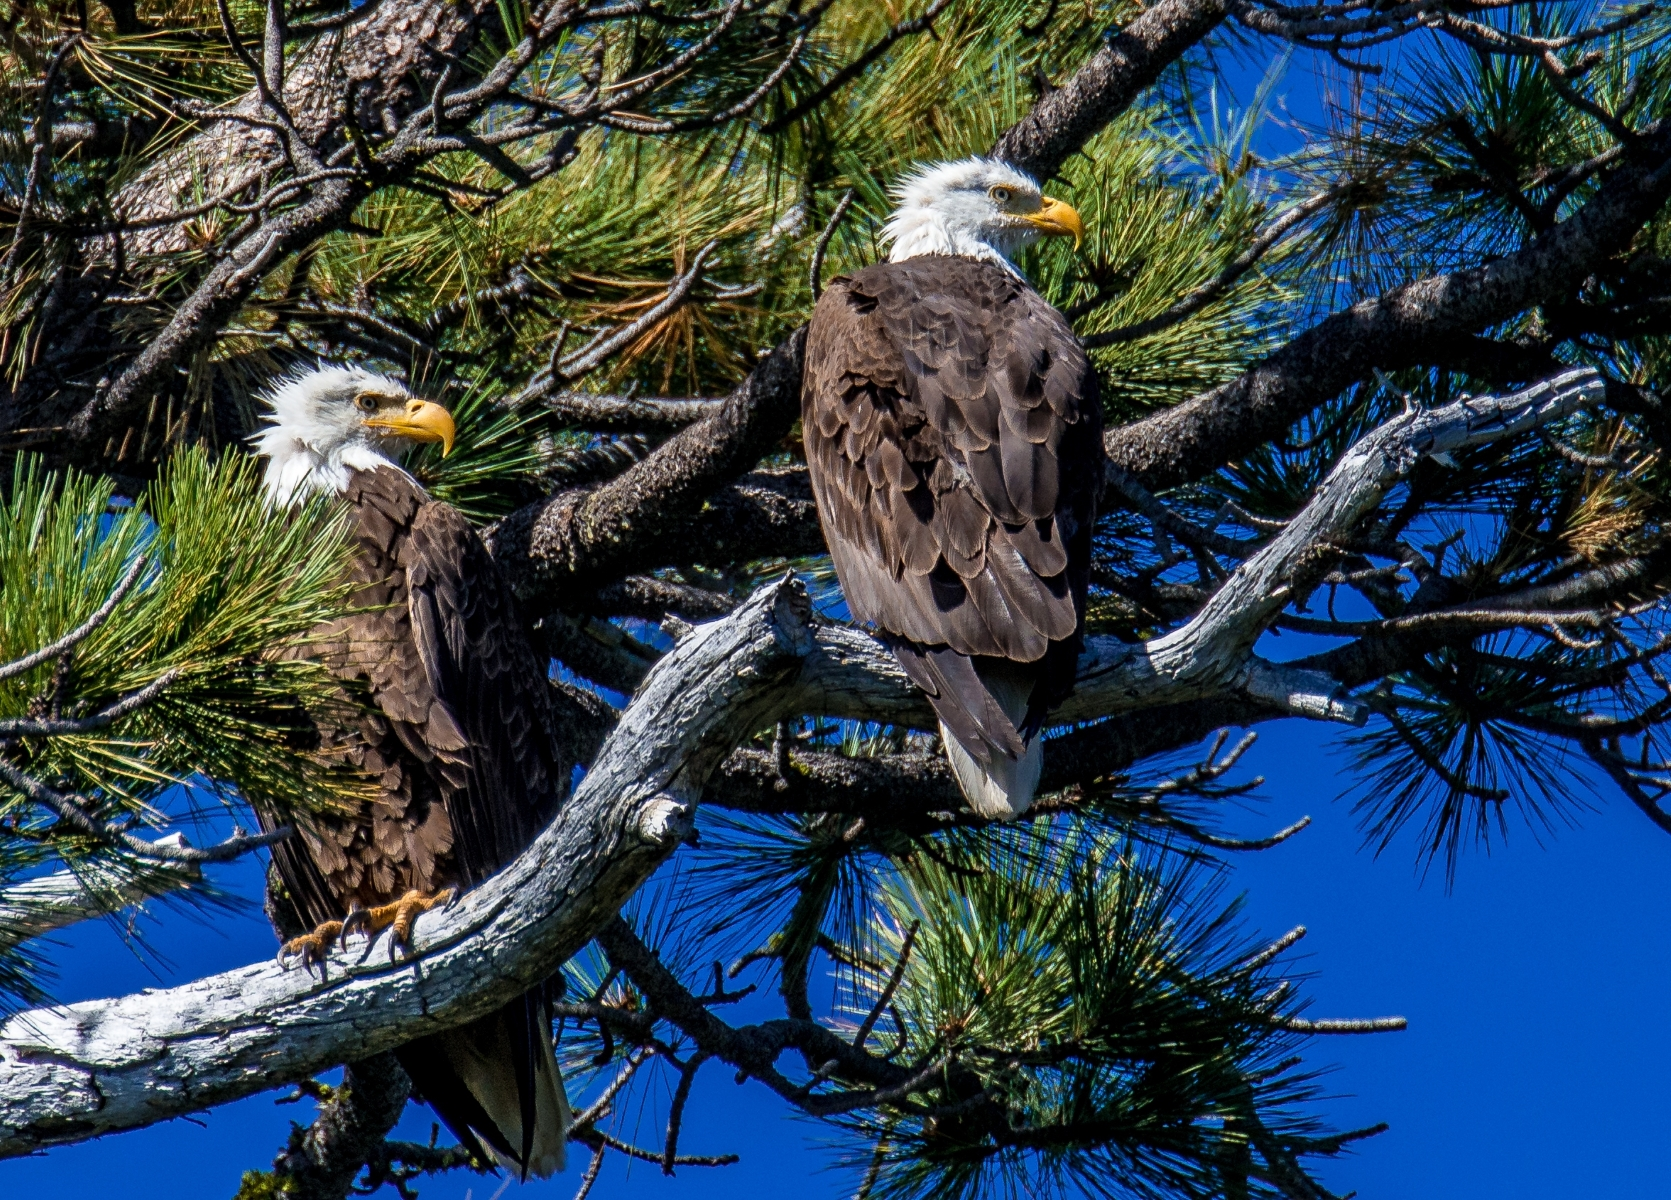 'Bald Eagles waiting to steal trout that an Osprey will catch - Desolation Wilderness.' (NI Best in Show) by Paul King - BK